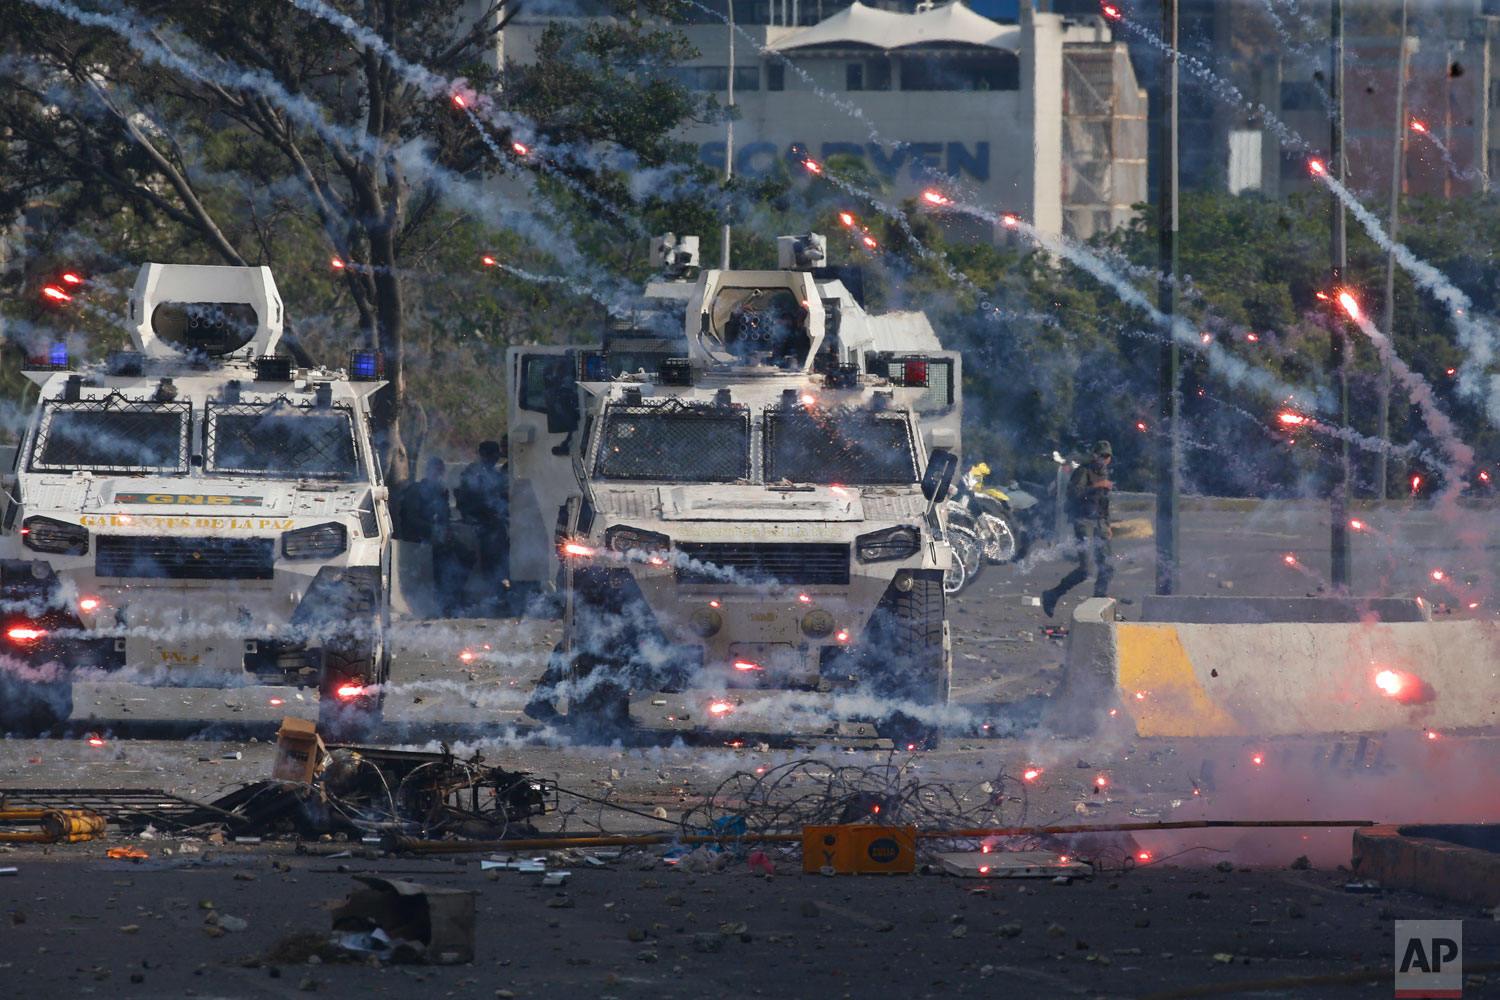 Fireworks launched by opponents of Venezuela's President Nicolas Maduro land near National Guard armored vehicles driven by soldiers loyal to Maduro, during a failed military uprising launched by opposition leader Juan Guaido in Caracas, Venezuela, Tuesday, April 30, 2019.  (AP Photo/Ariana Cubillos)